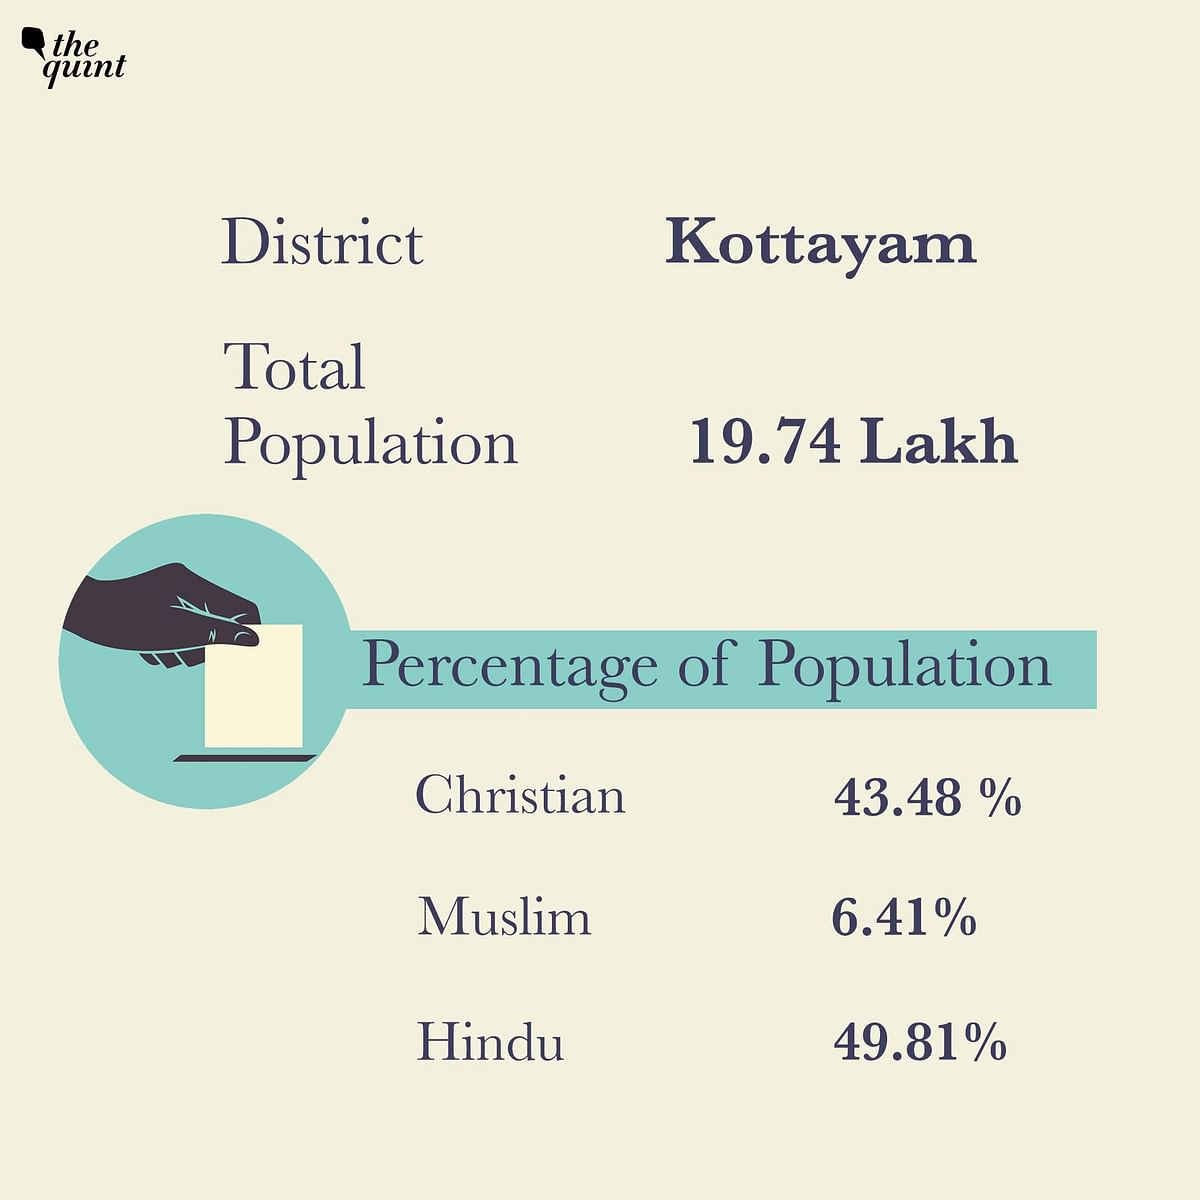 Christians form 43.48 per cent of the population in Kottayam.